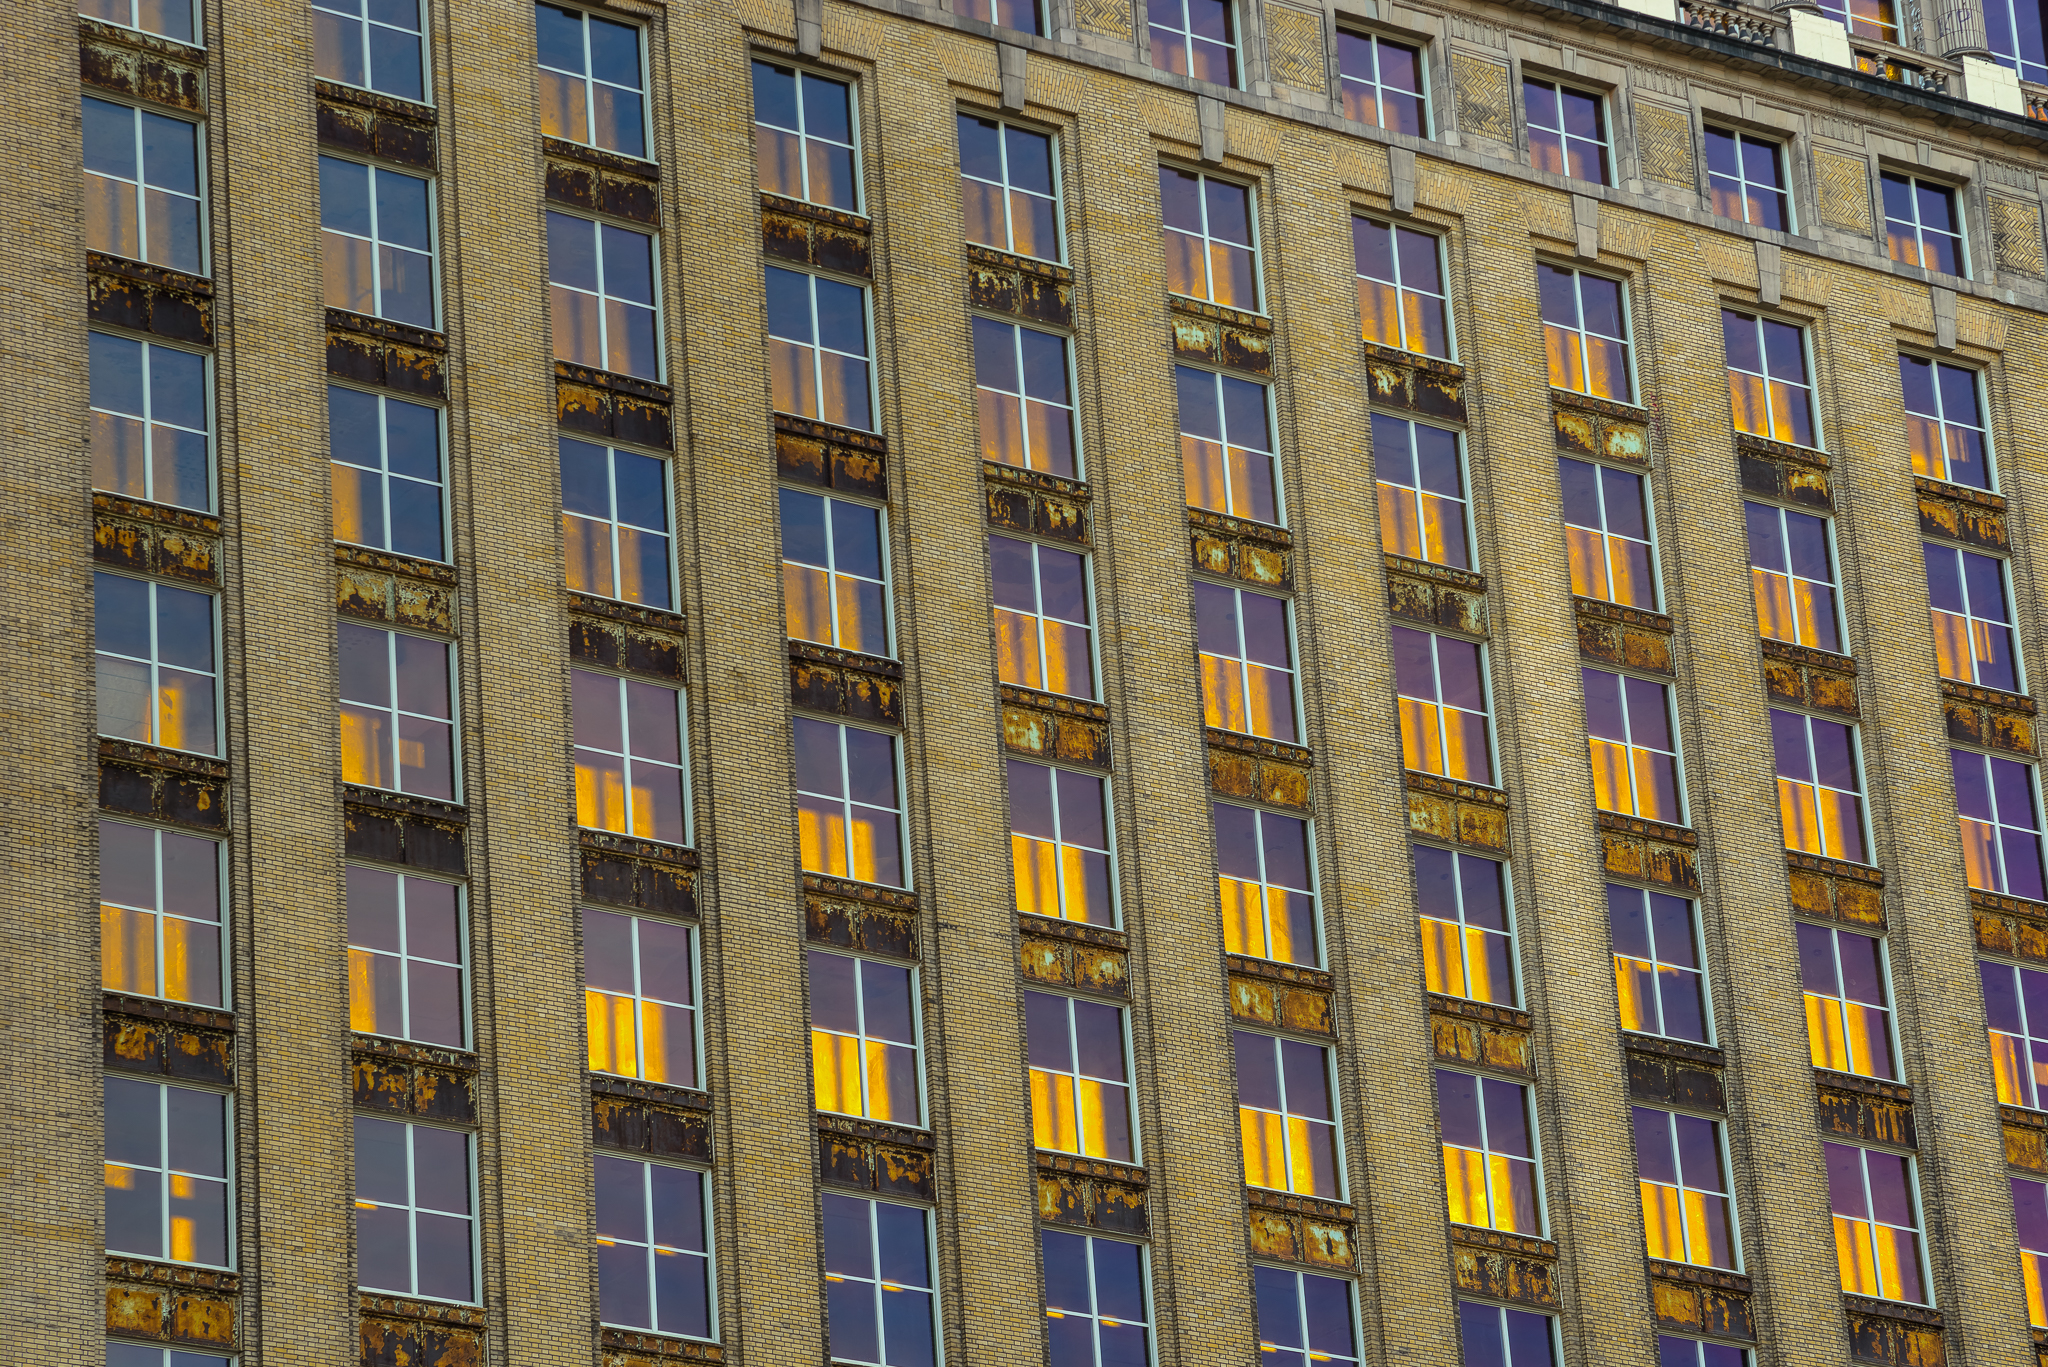 detroit_michigan_central_windows_backlight_reflection.jpg